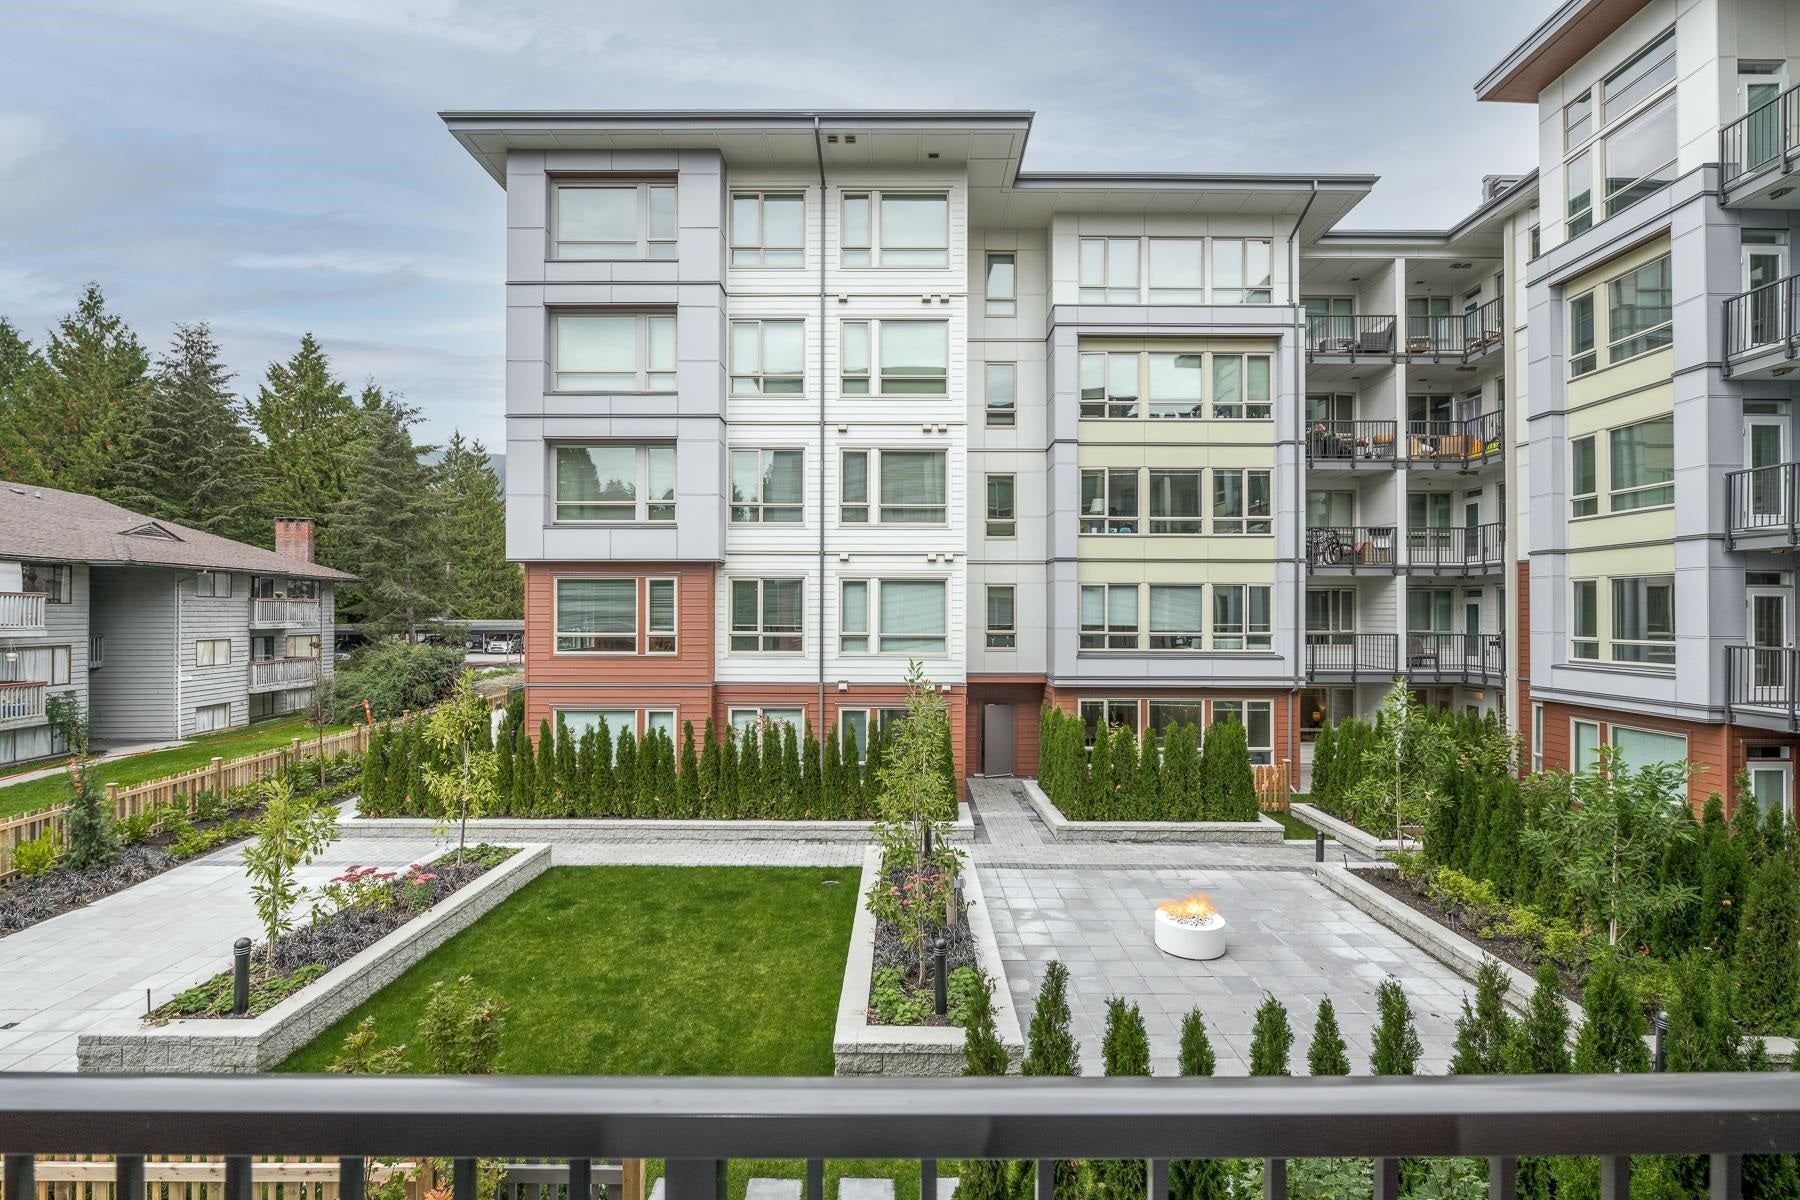 219 2651 LIBRARY LANE - Lynn Valley Apartment/Condo for sale, 2 Bedrooms (R2623232) - #21